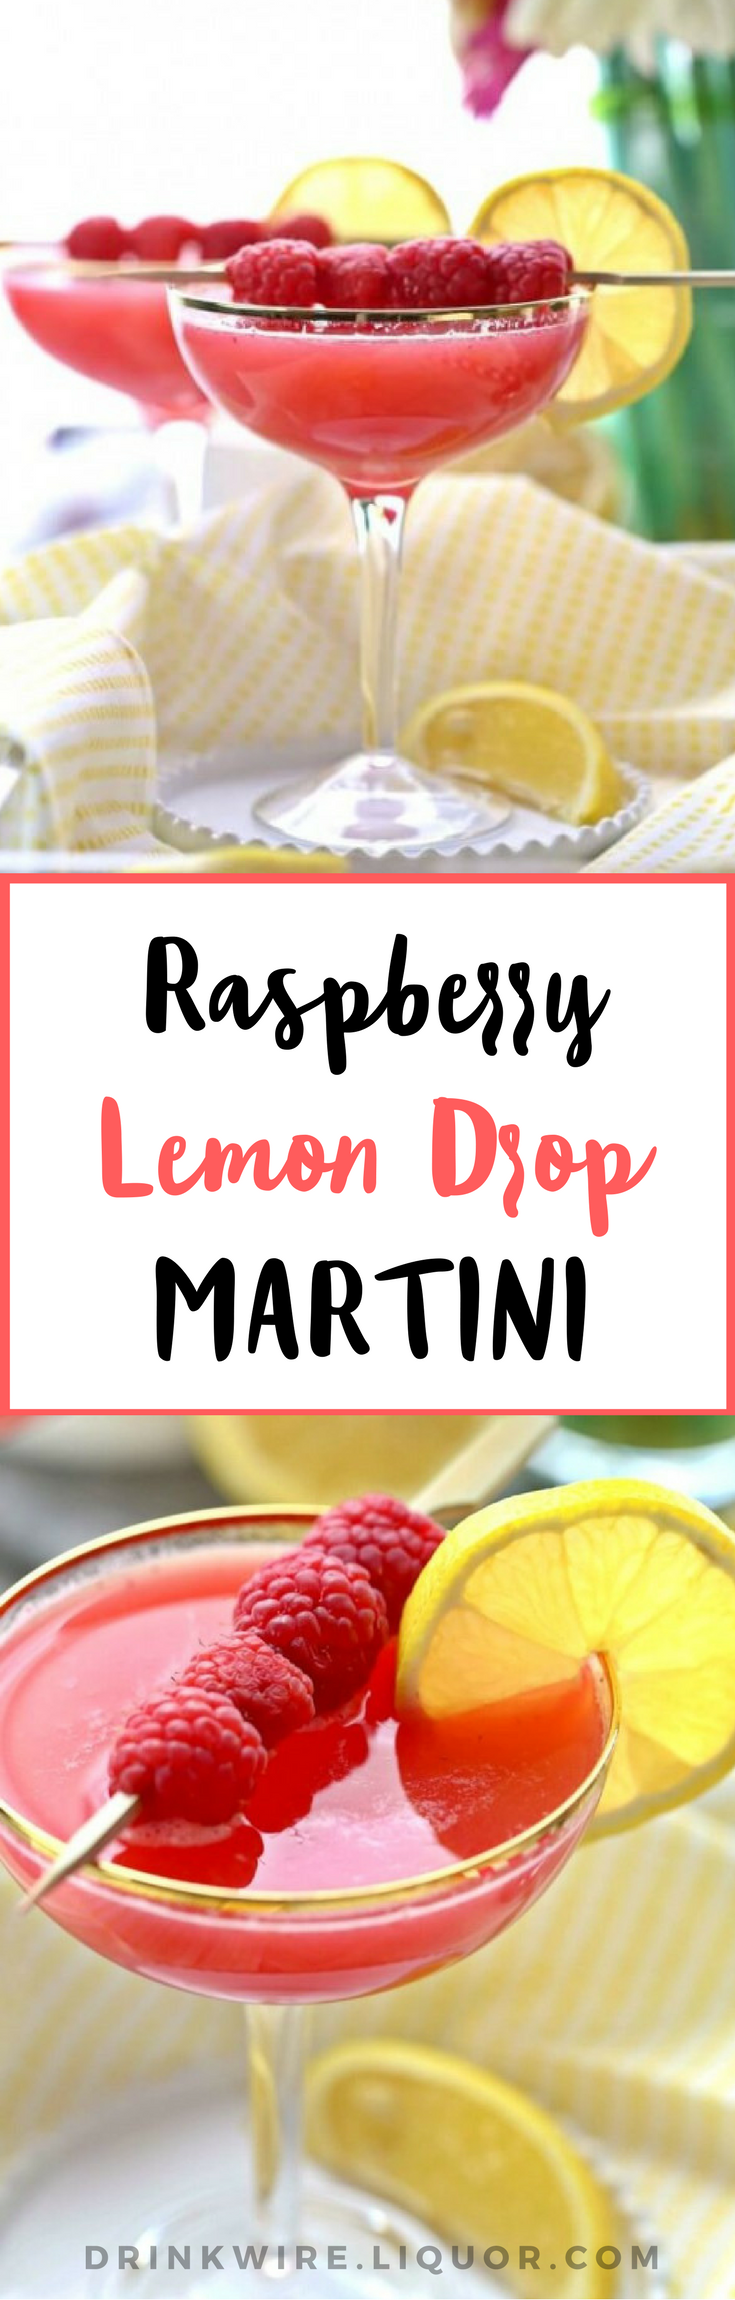 This raspberry lemon drop #martini is an instant modern classic #cocktail. You'll enjoy it anytime of year, not just #summer. Trust us.